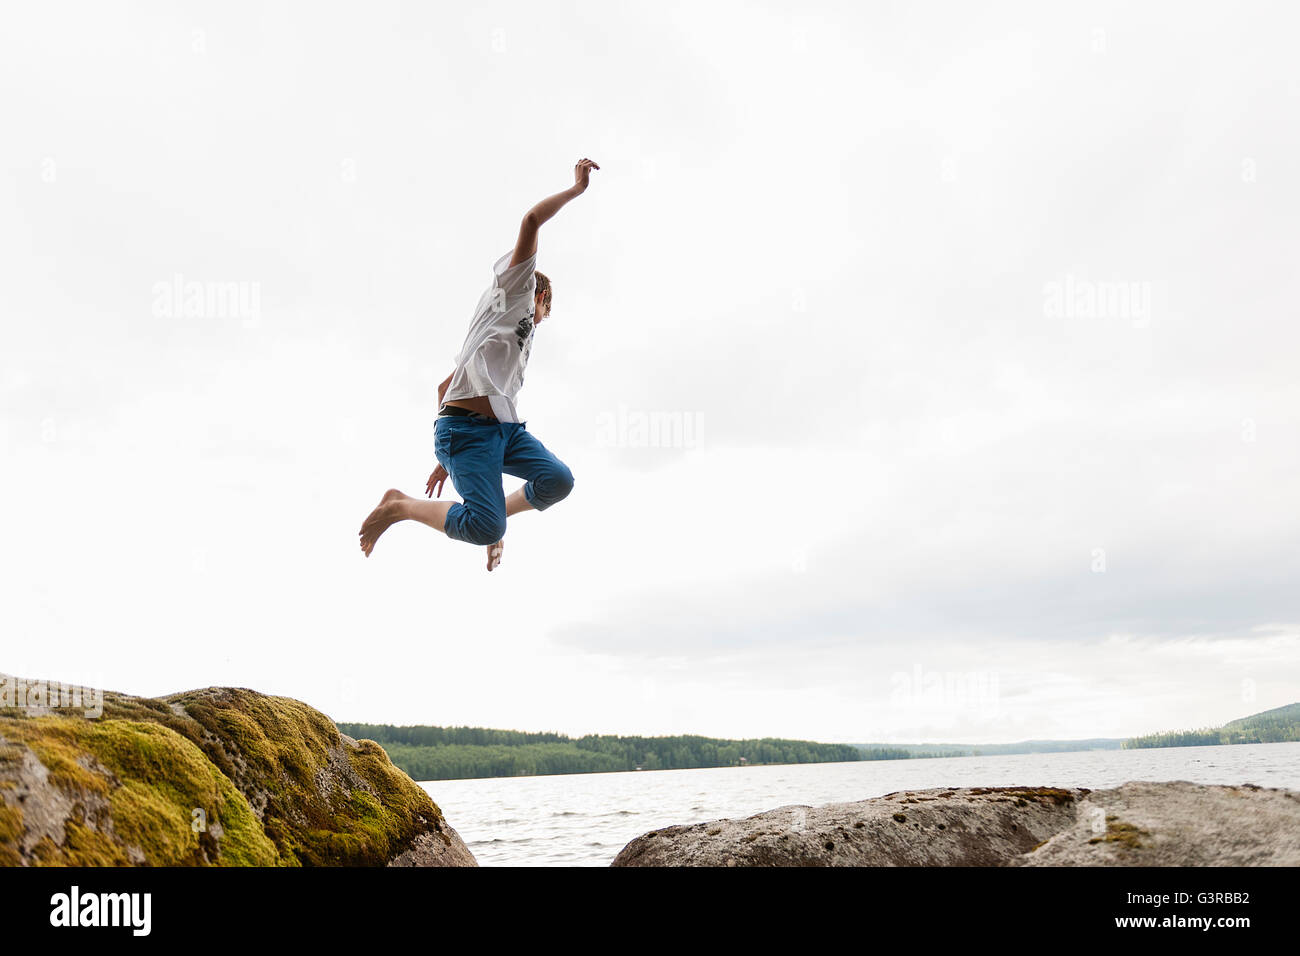 Sweden, Vastmanland, Bergslagen, Hallefors, Nygard, Teenage boy (14-15) jumping from rocks - Stock Image